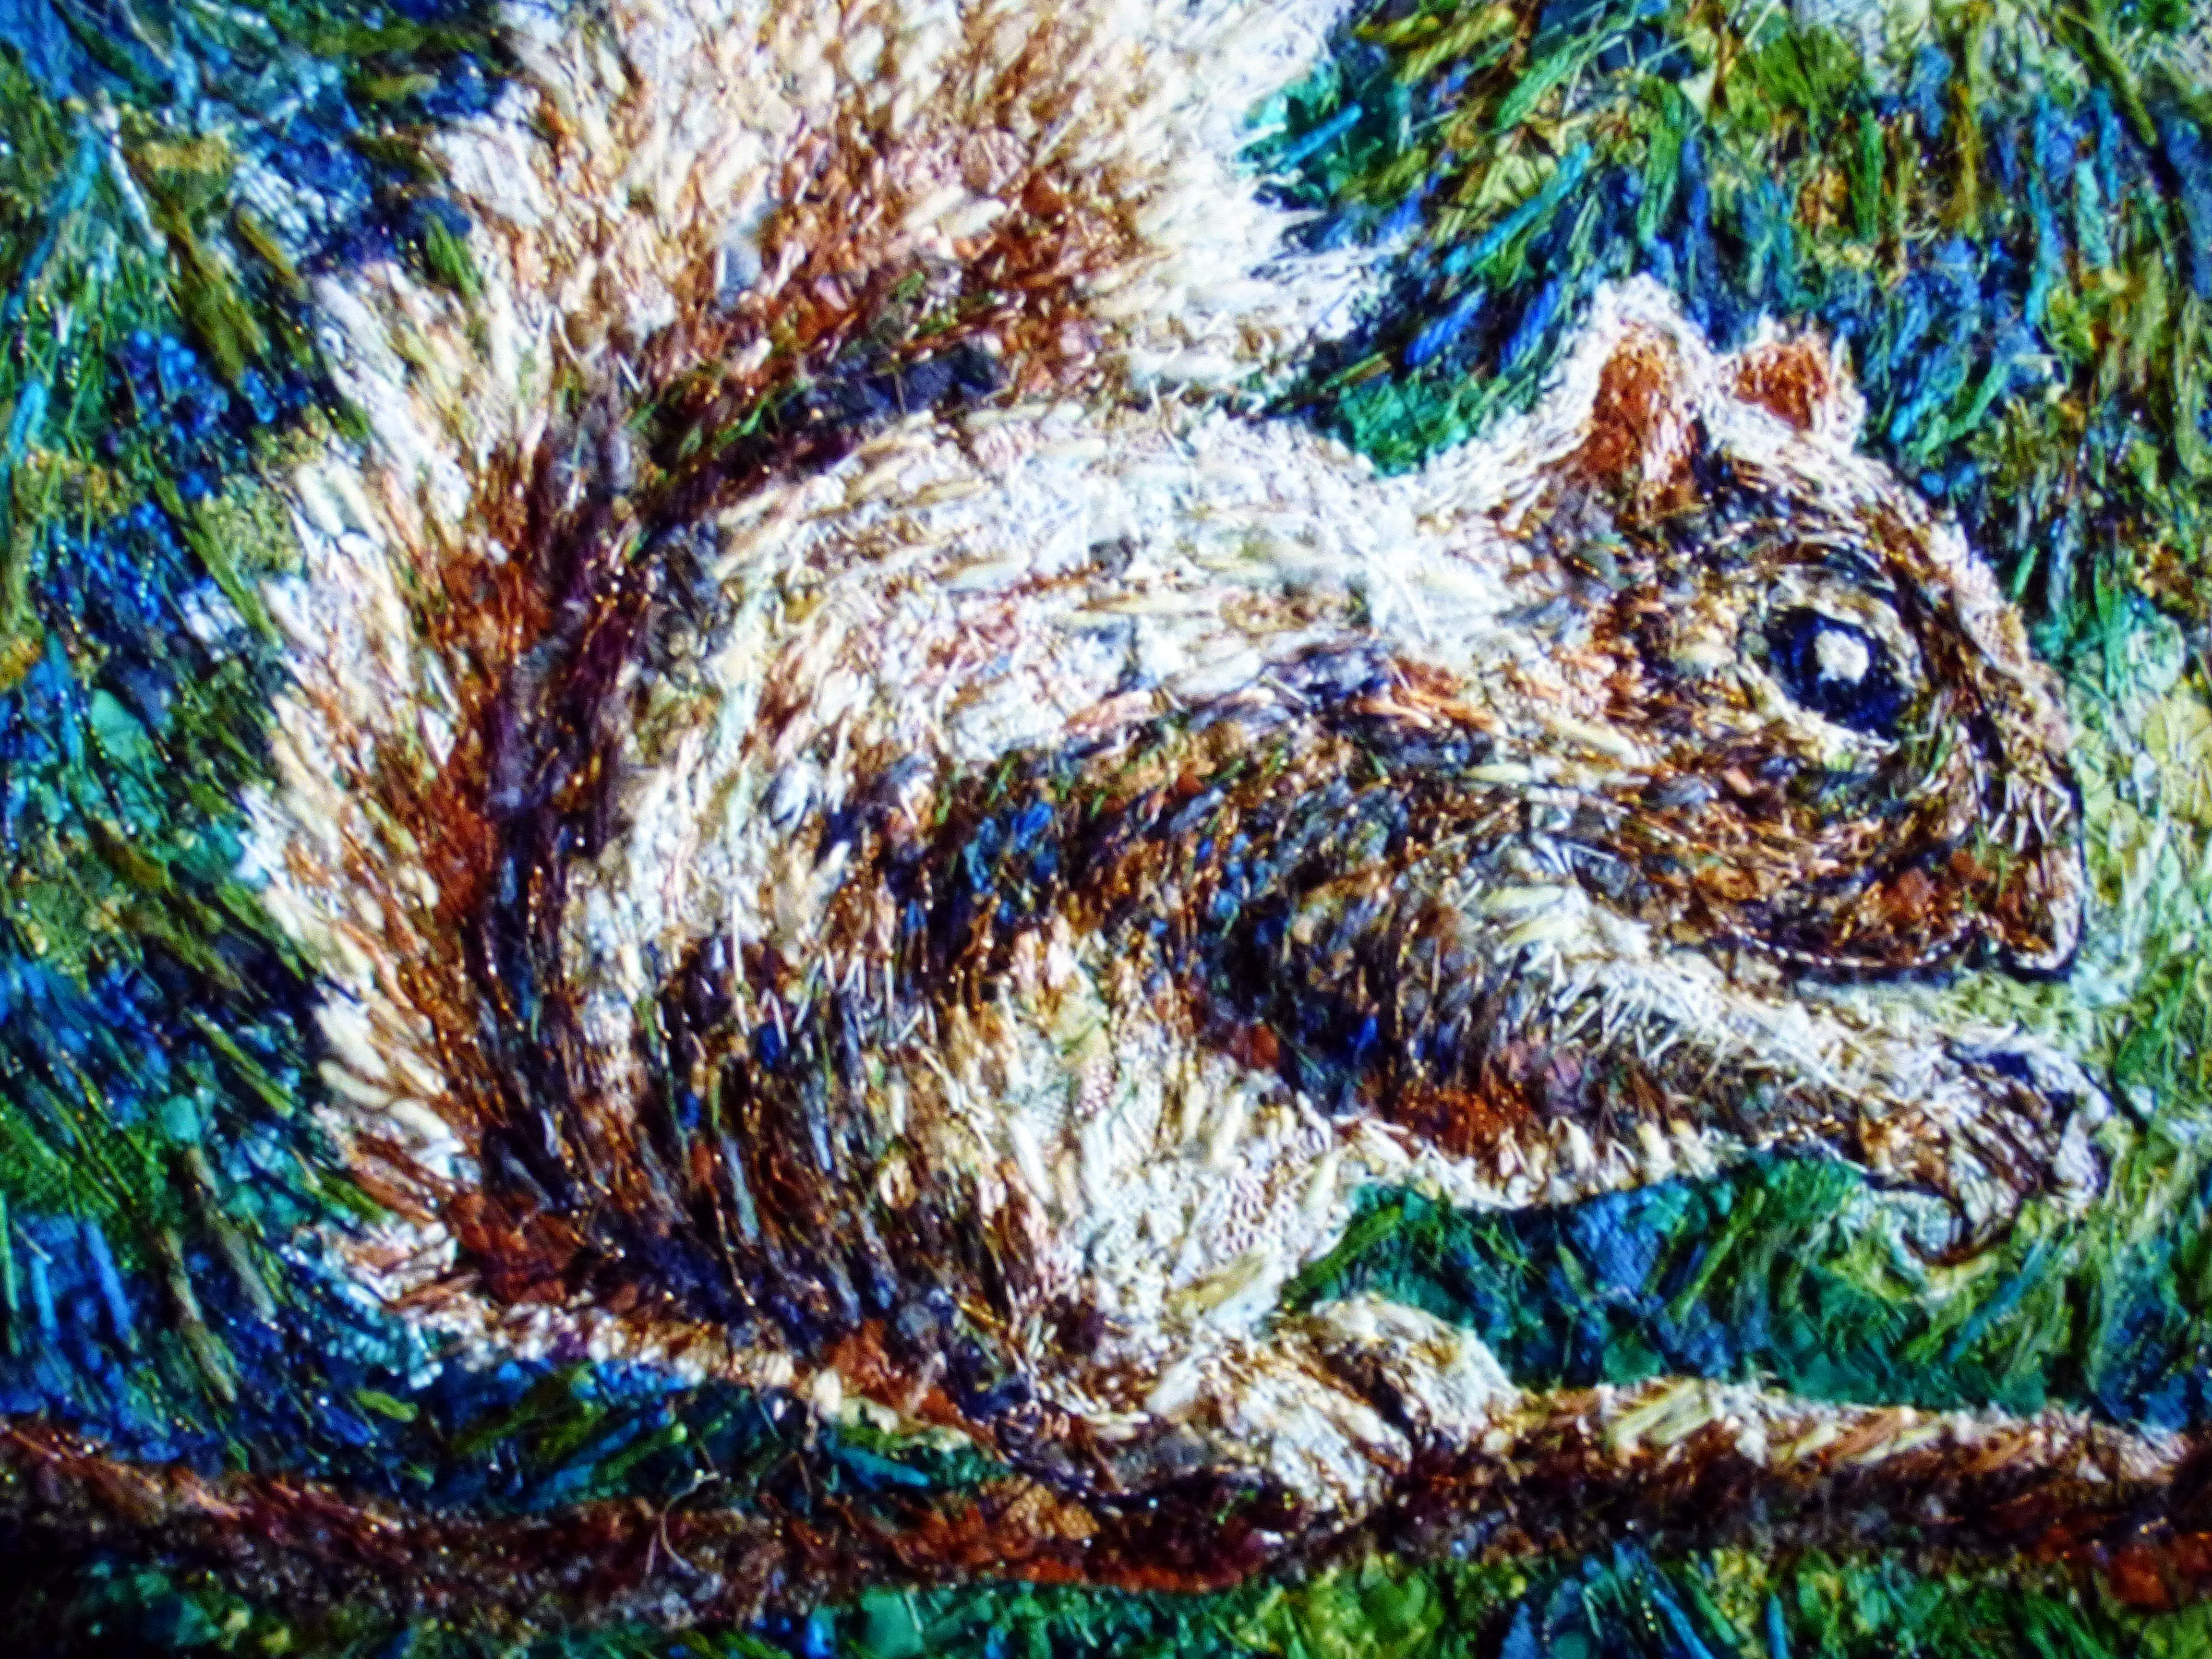 SQUIRREL embroidery by Richard Box